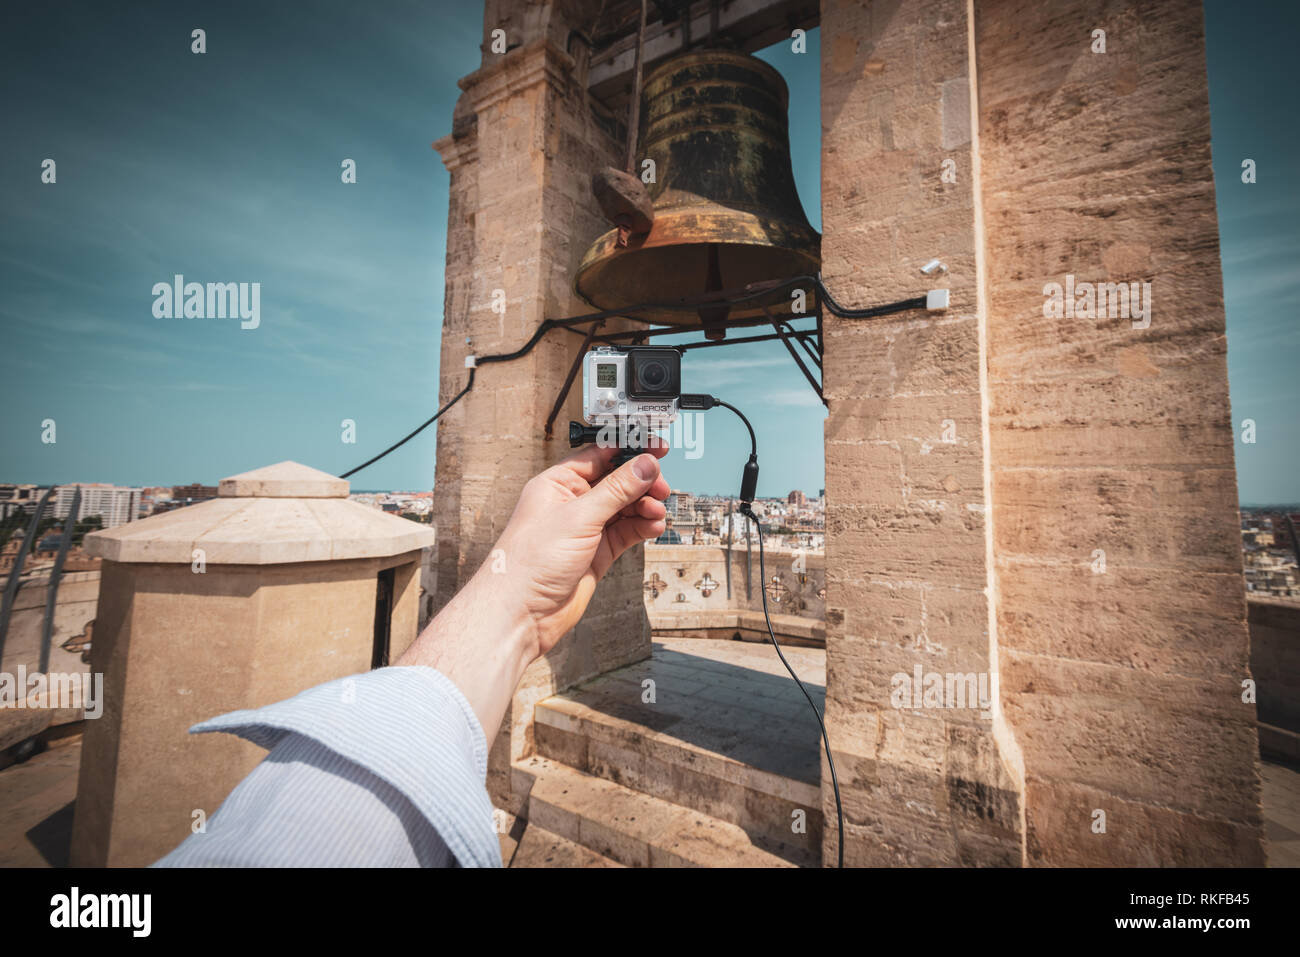 A man holds a GoPro camera in front of a large bell at the top of the El Miguelete, the bell tower of the Valencia Cathedral, in Valencia, Spain. Stock Photo